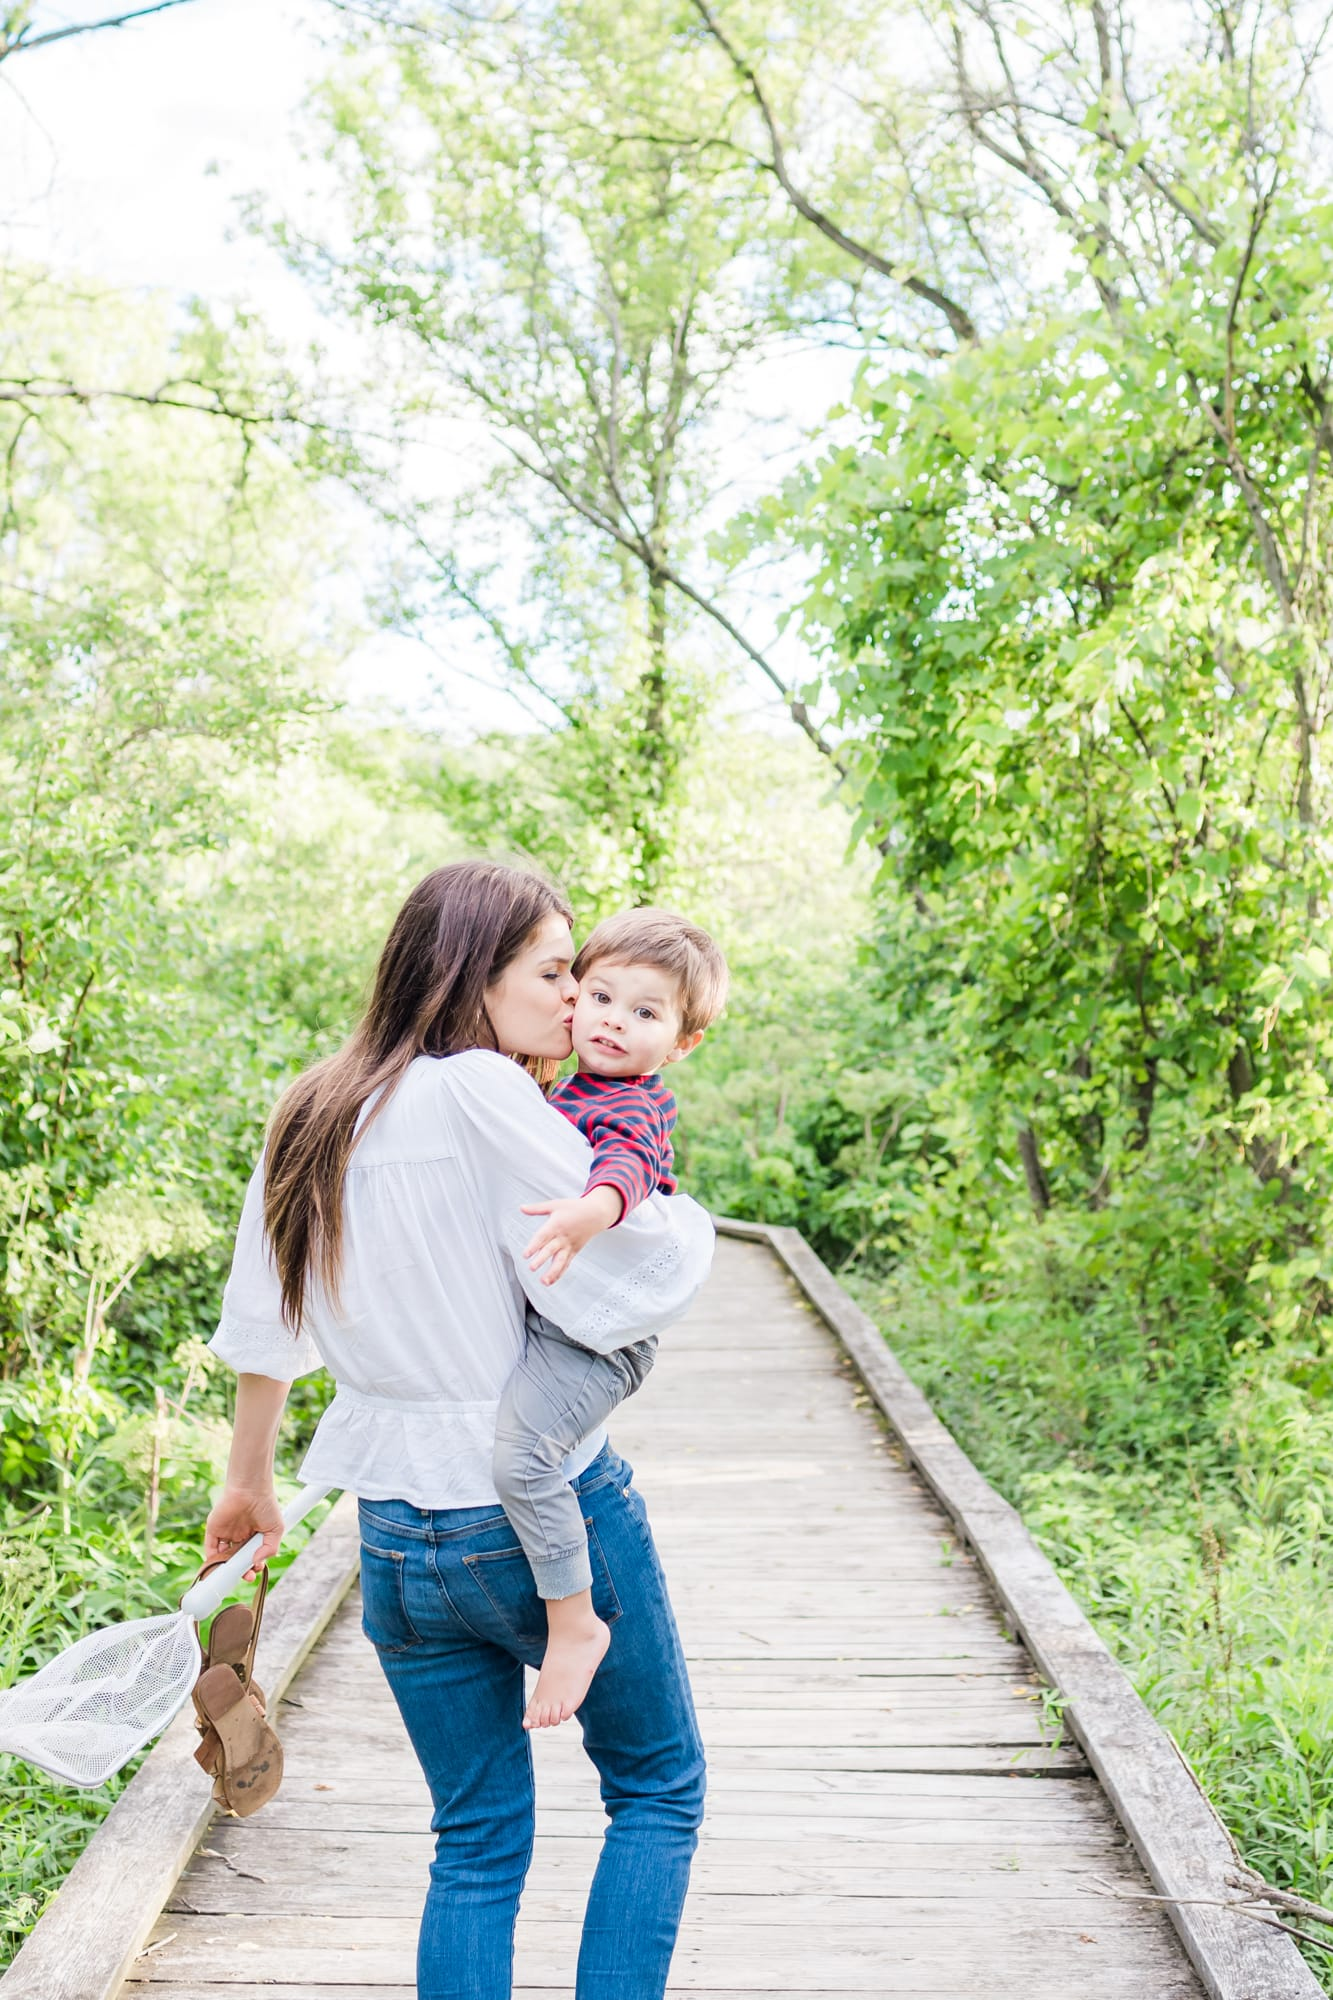 Family photos at Millbrook Marsh in State College